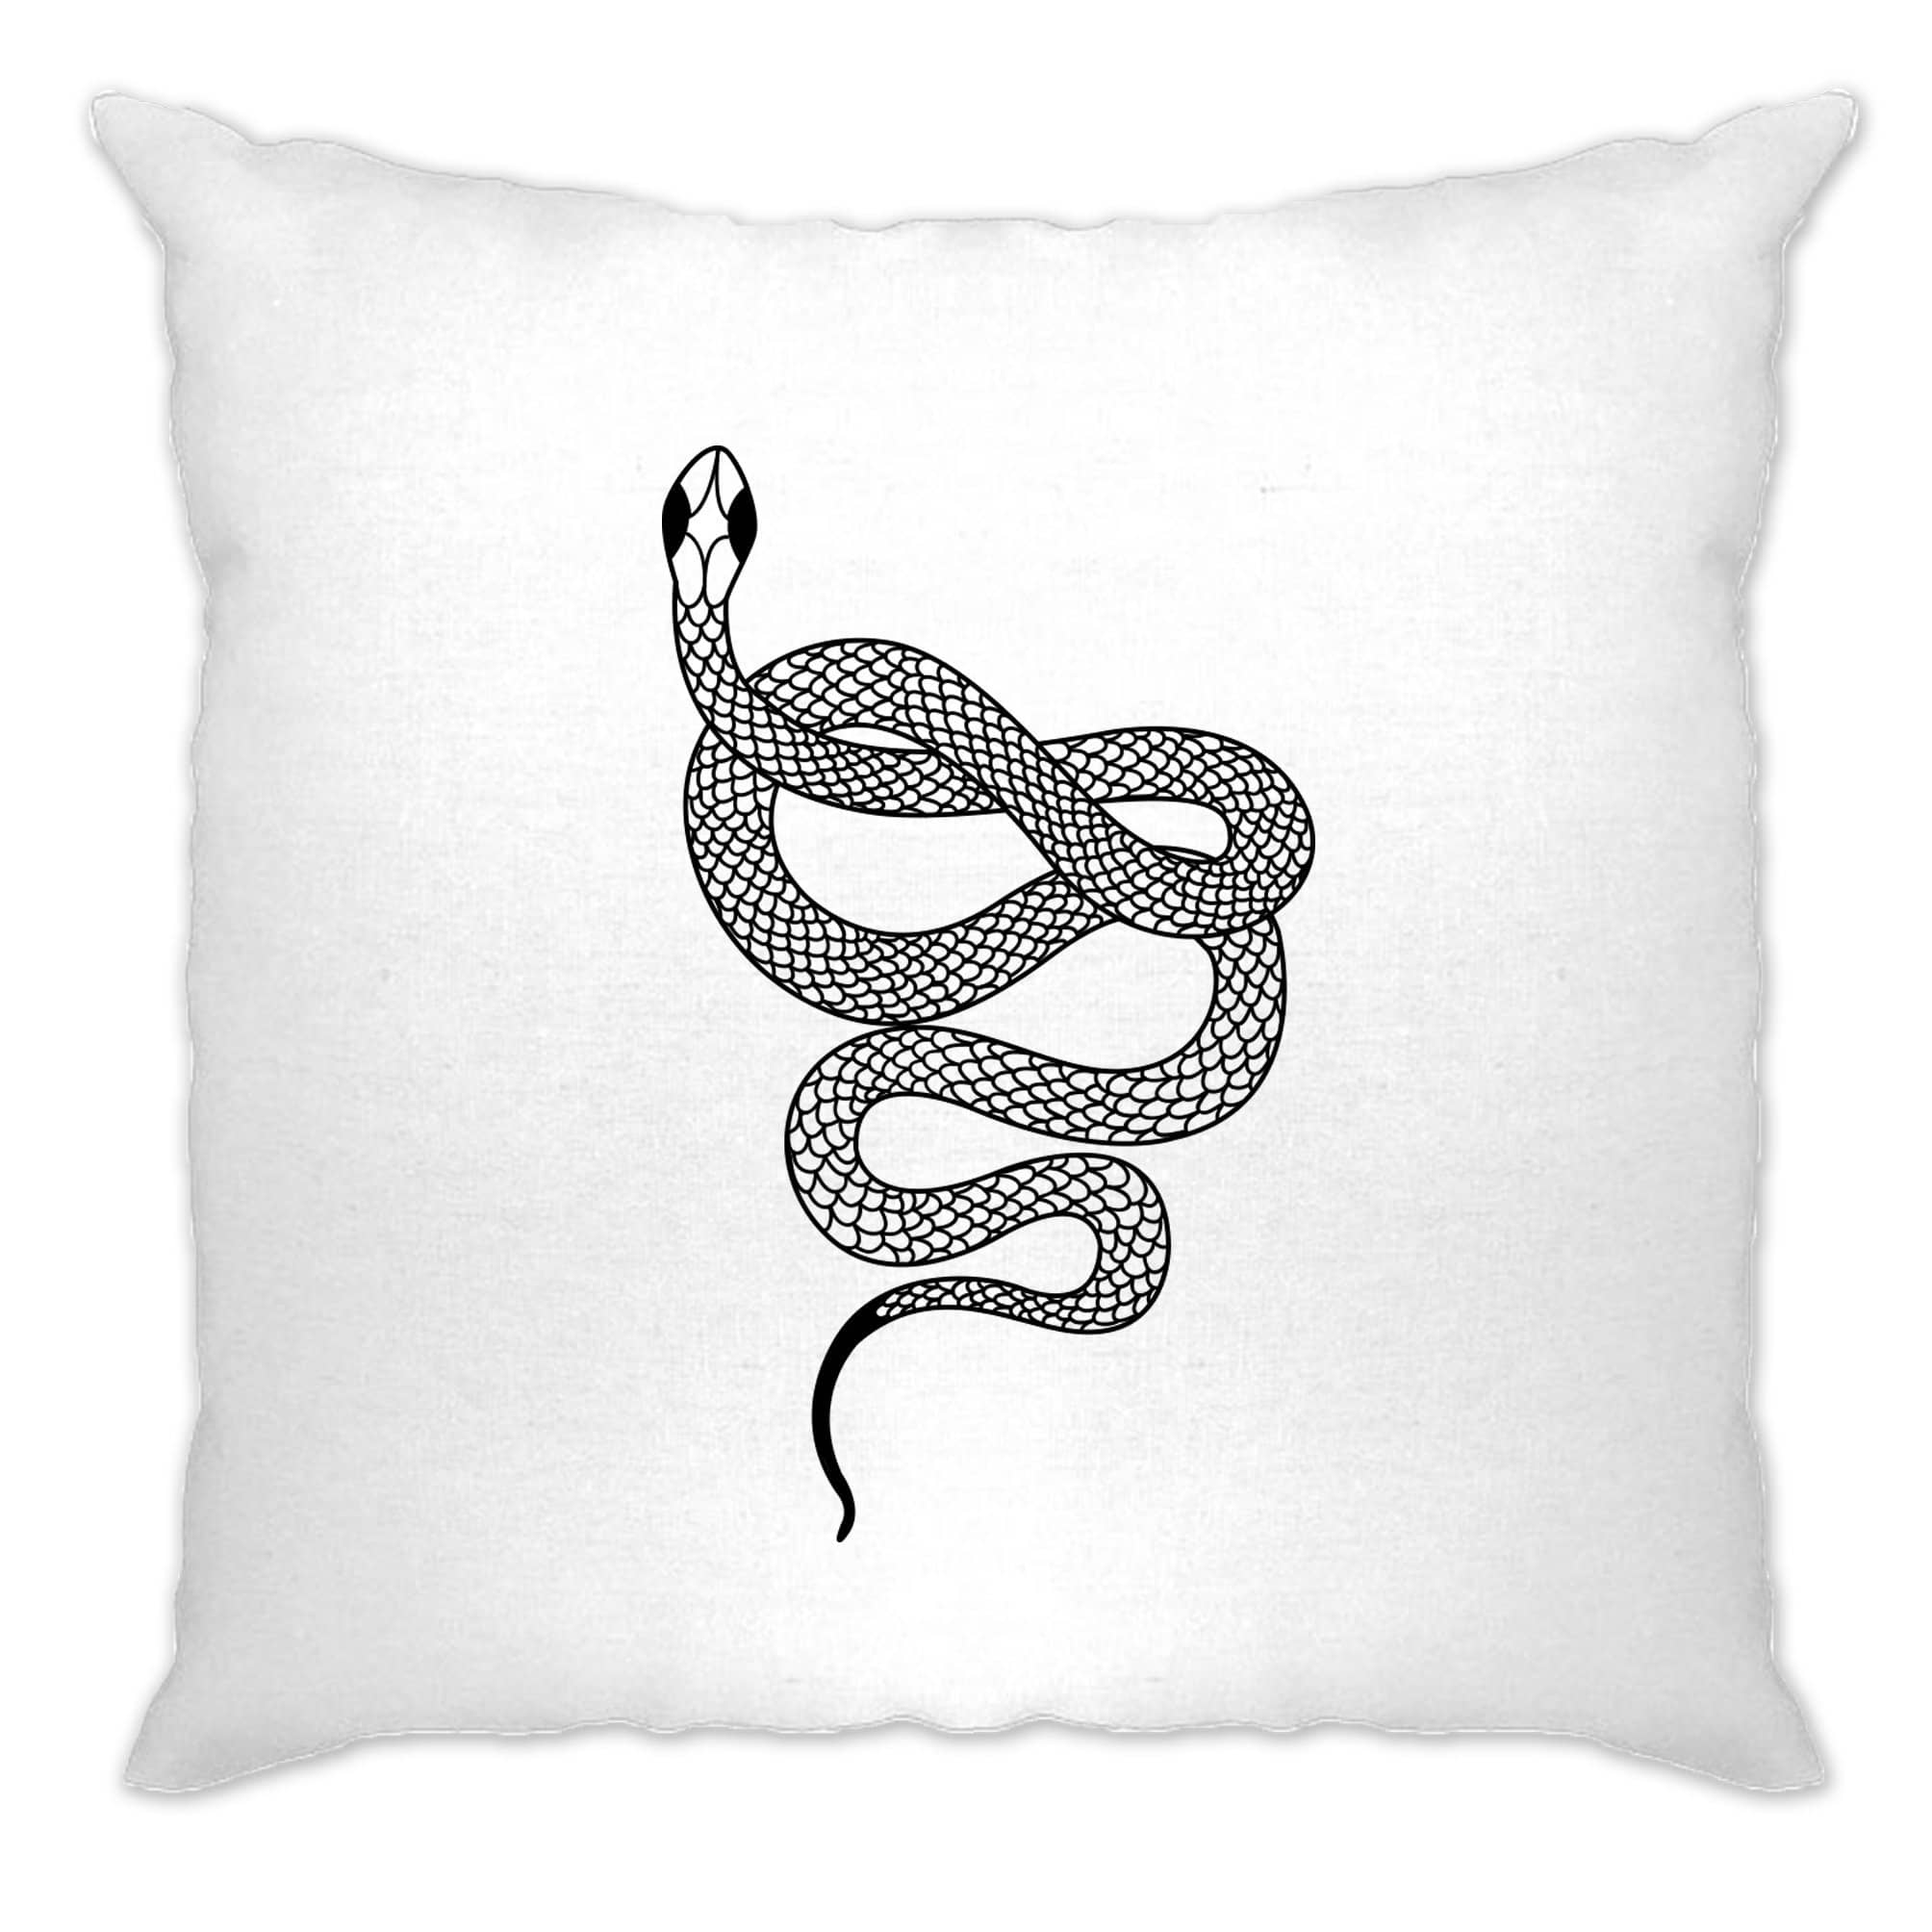 Animal Art Cushion Cover Illustrated Snake Tattoo Graphic